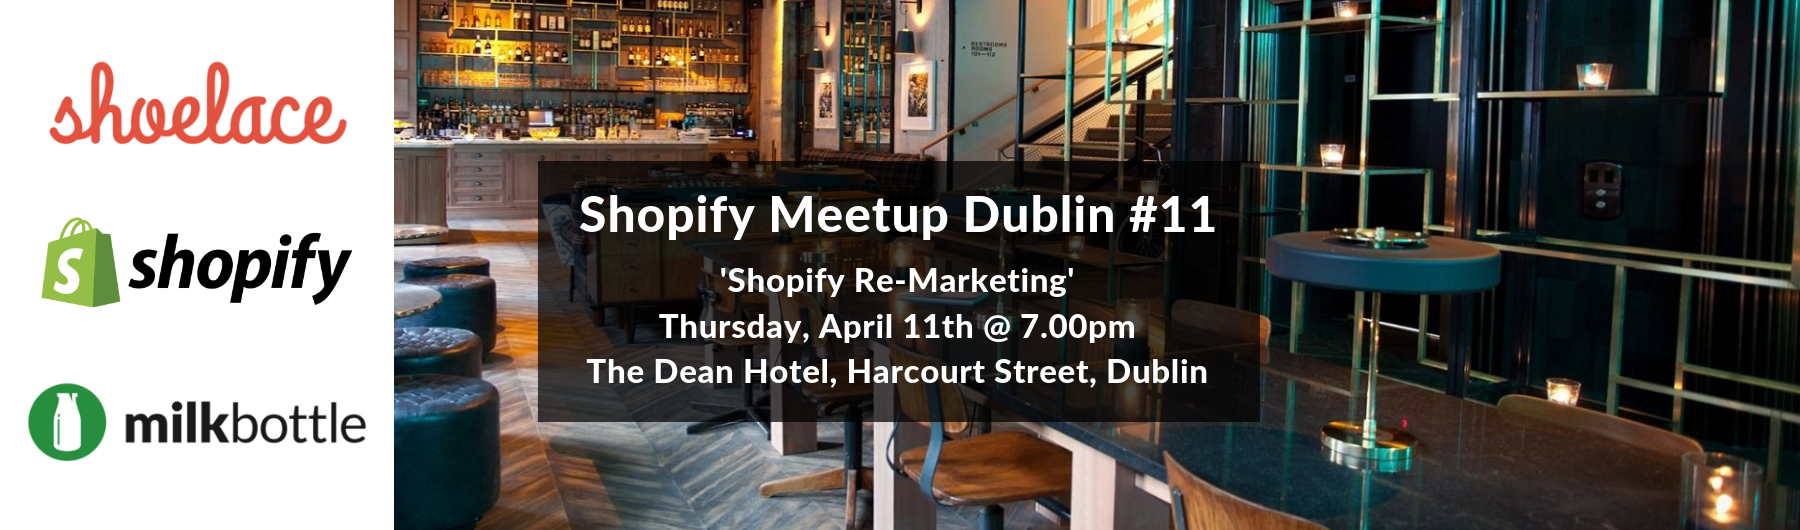 Shopify Meetup Dublin #11